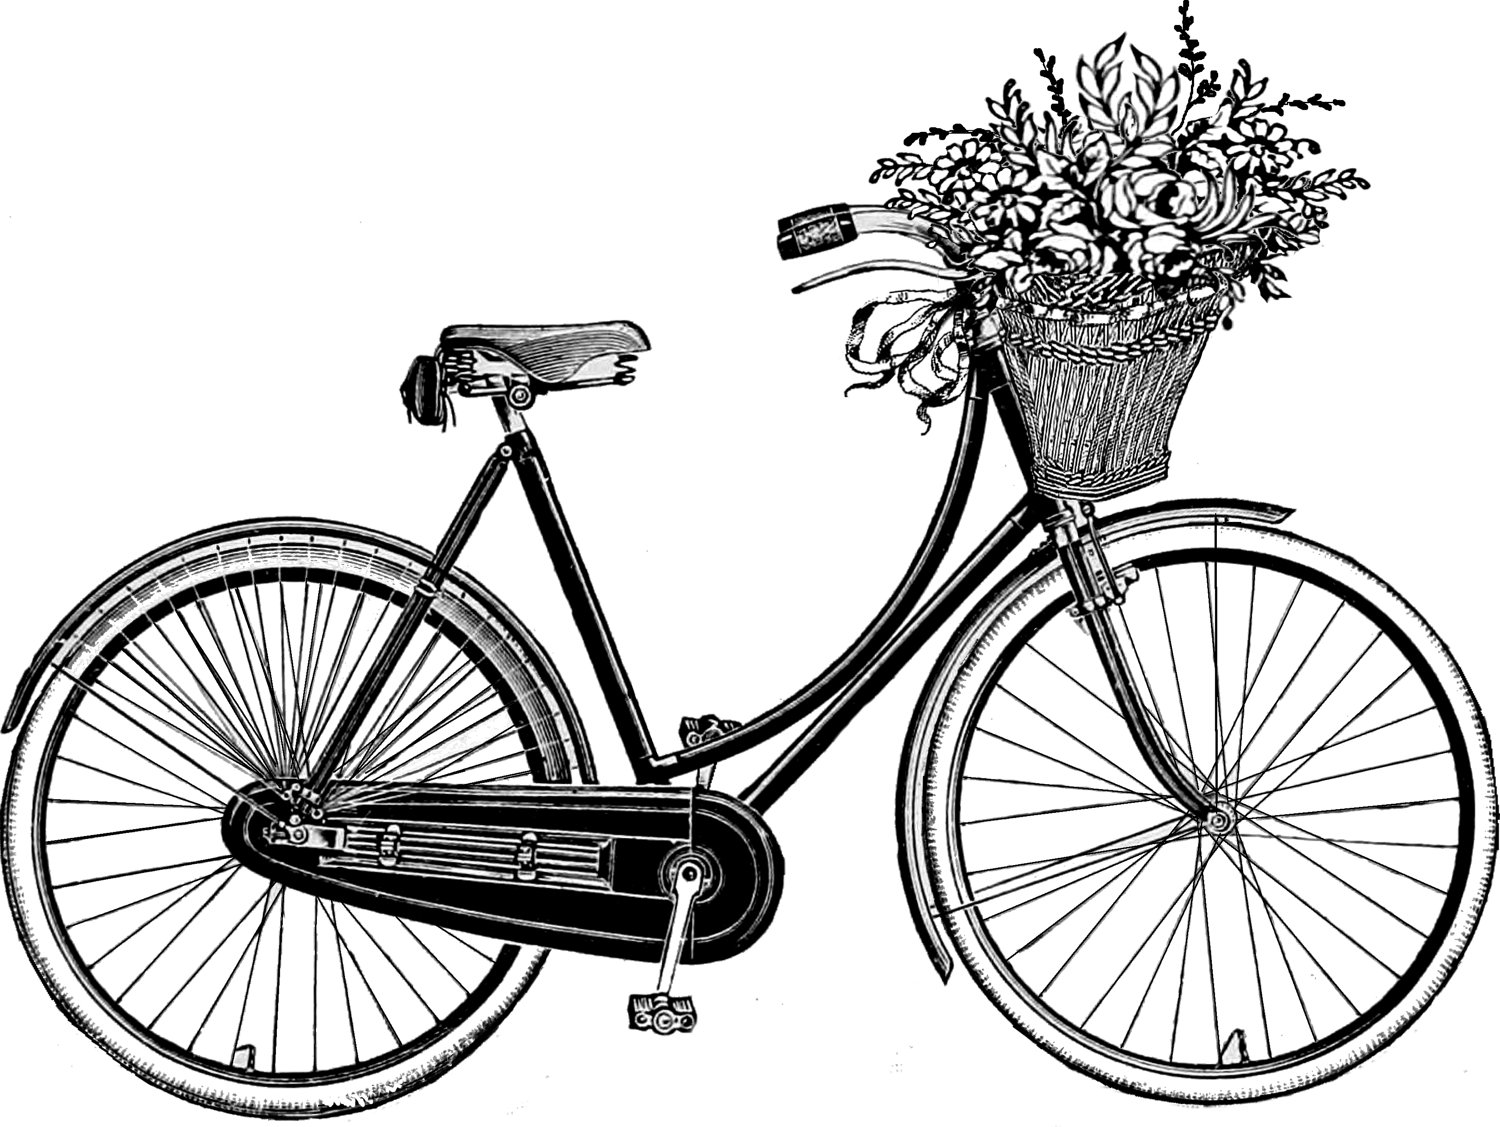 draw a bicycle bicycle drawing images at getdrawings free download draw a bicycle